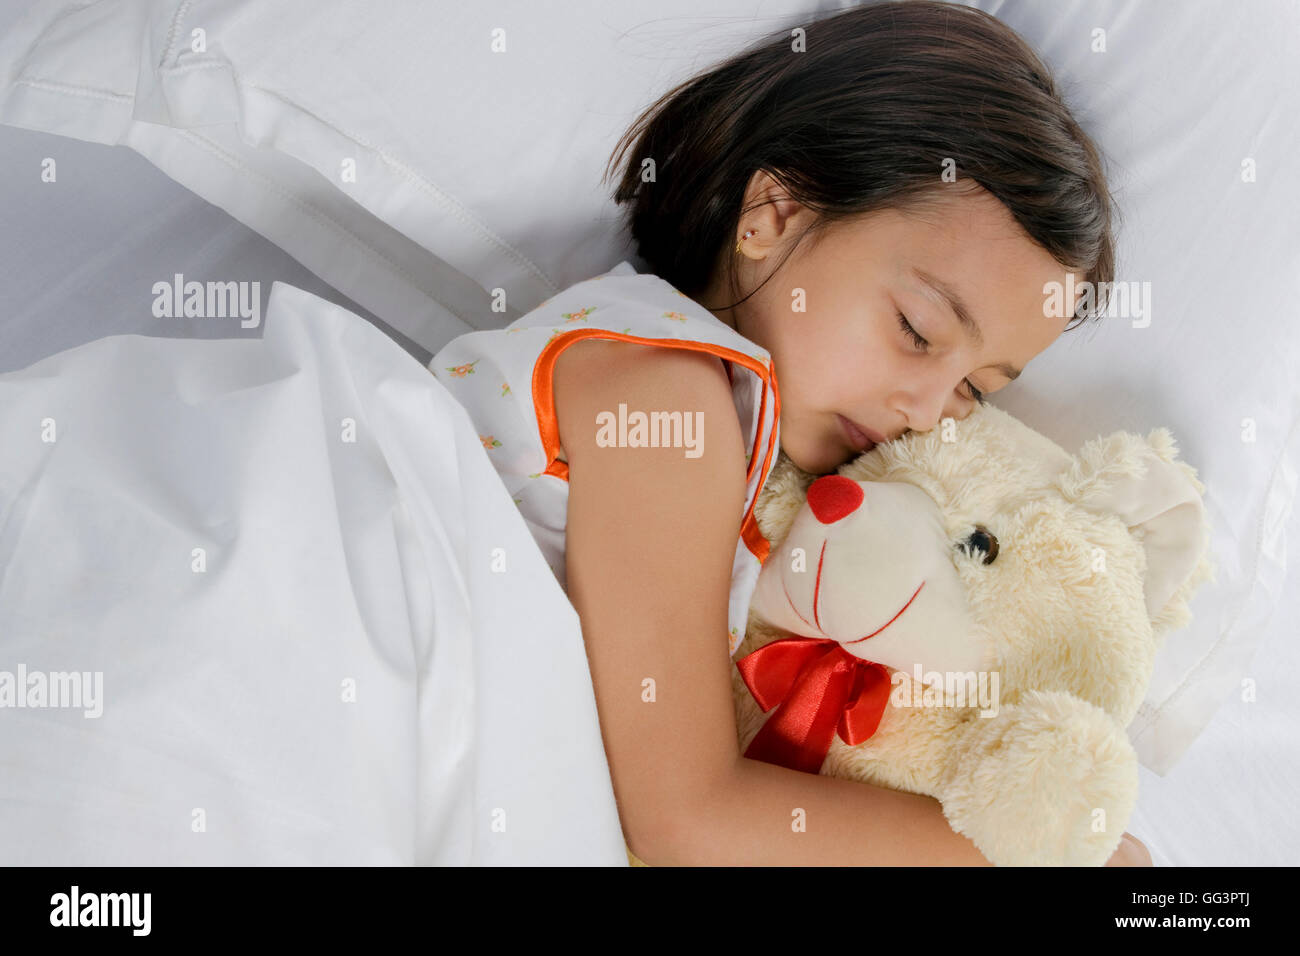 Image result for Images to present little Indian girl children sleep.